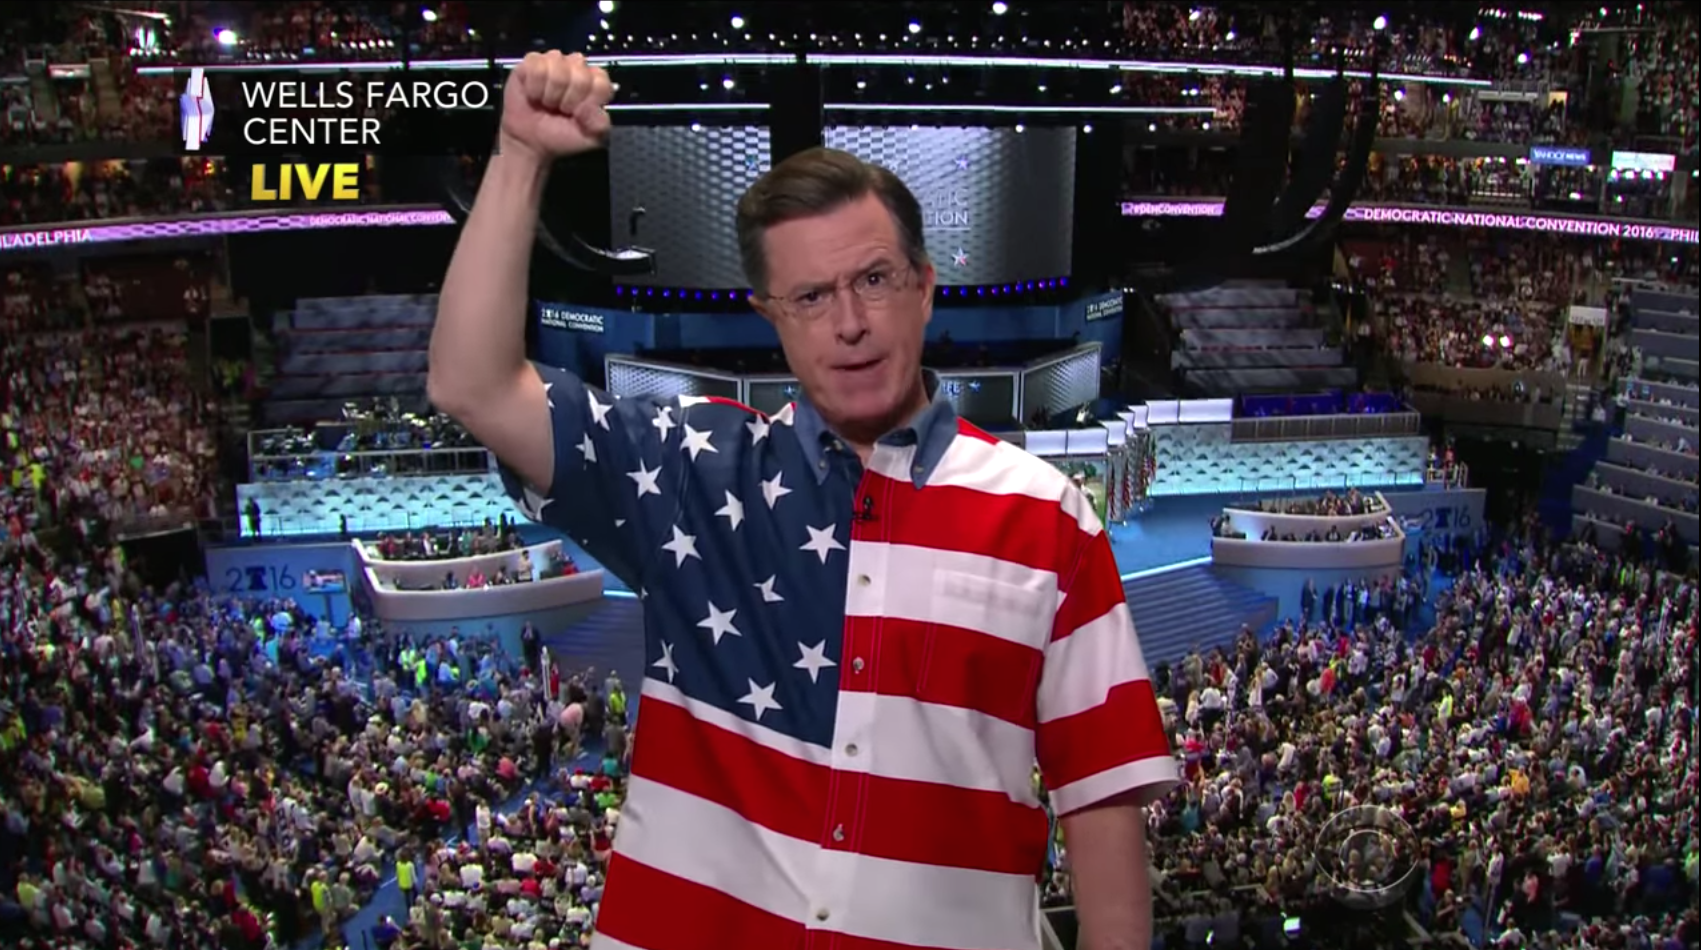 New Stephen Colbert